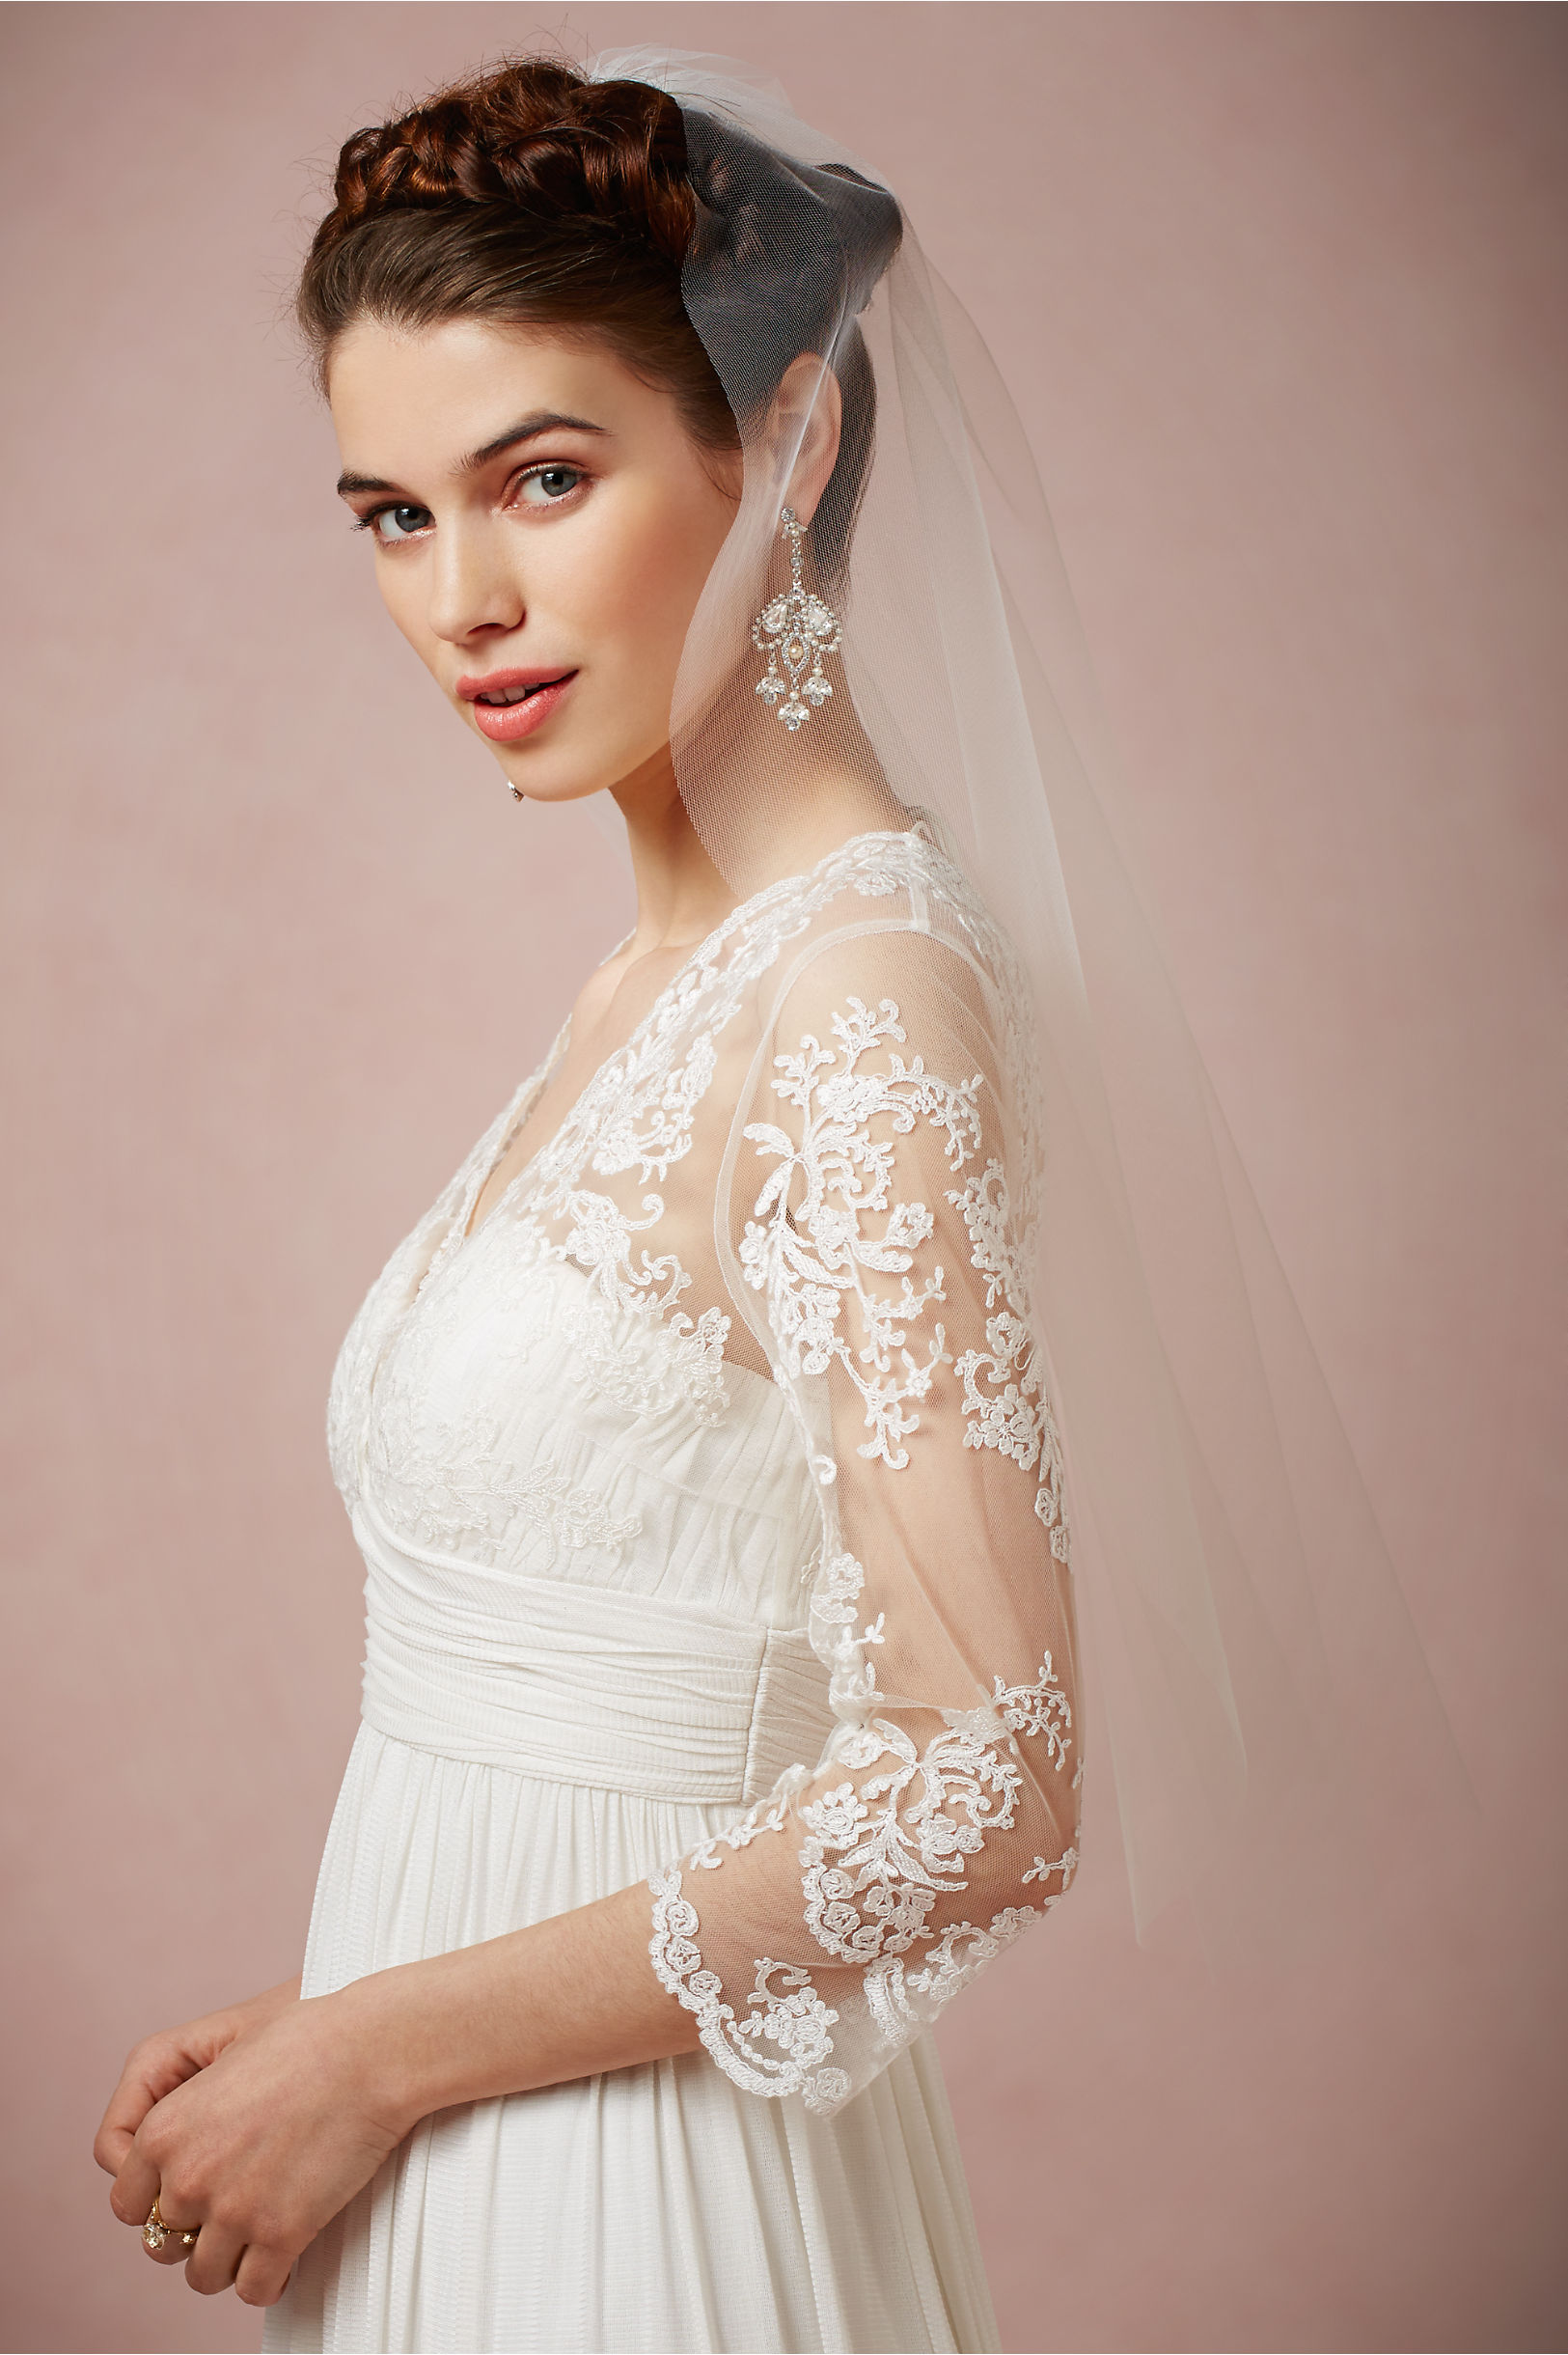 veils accessories veils blusher wedding veils Tisha Blusher